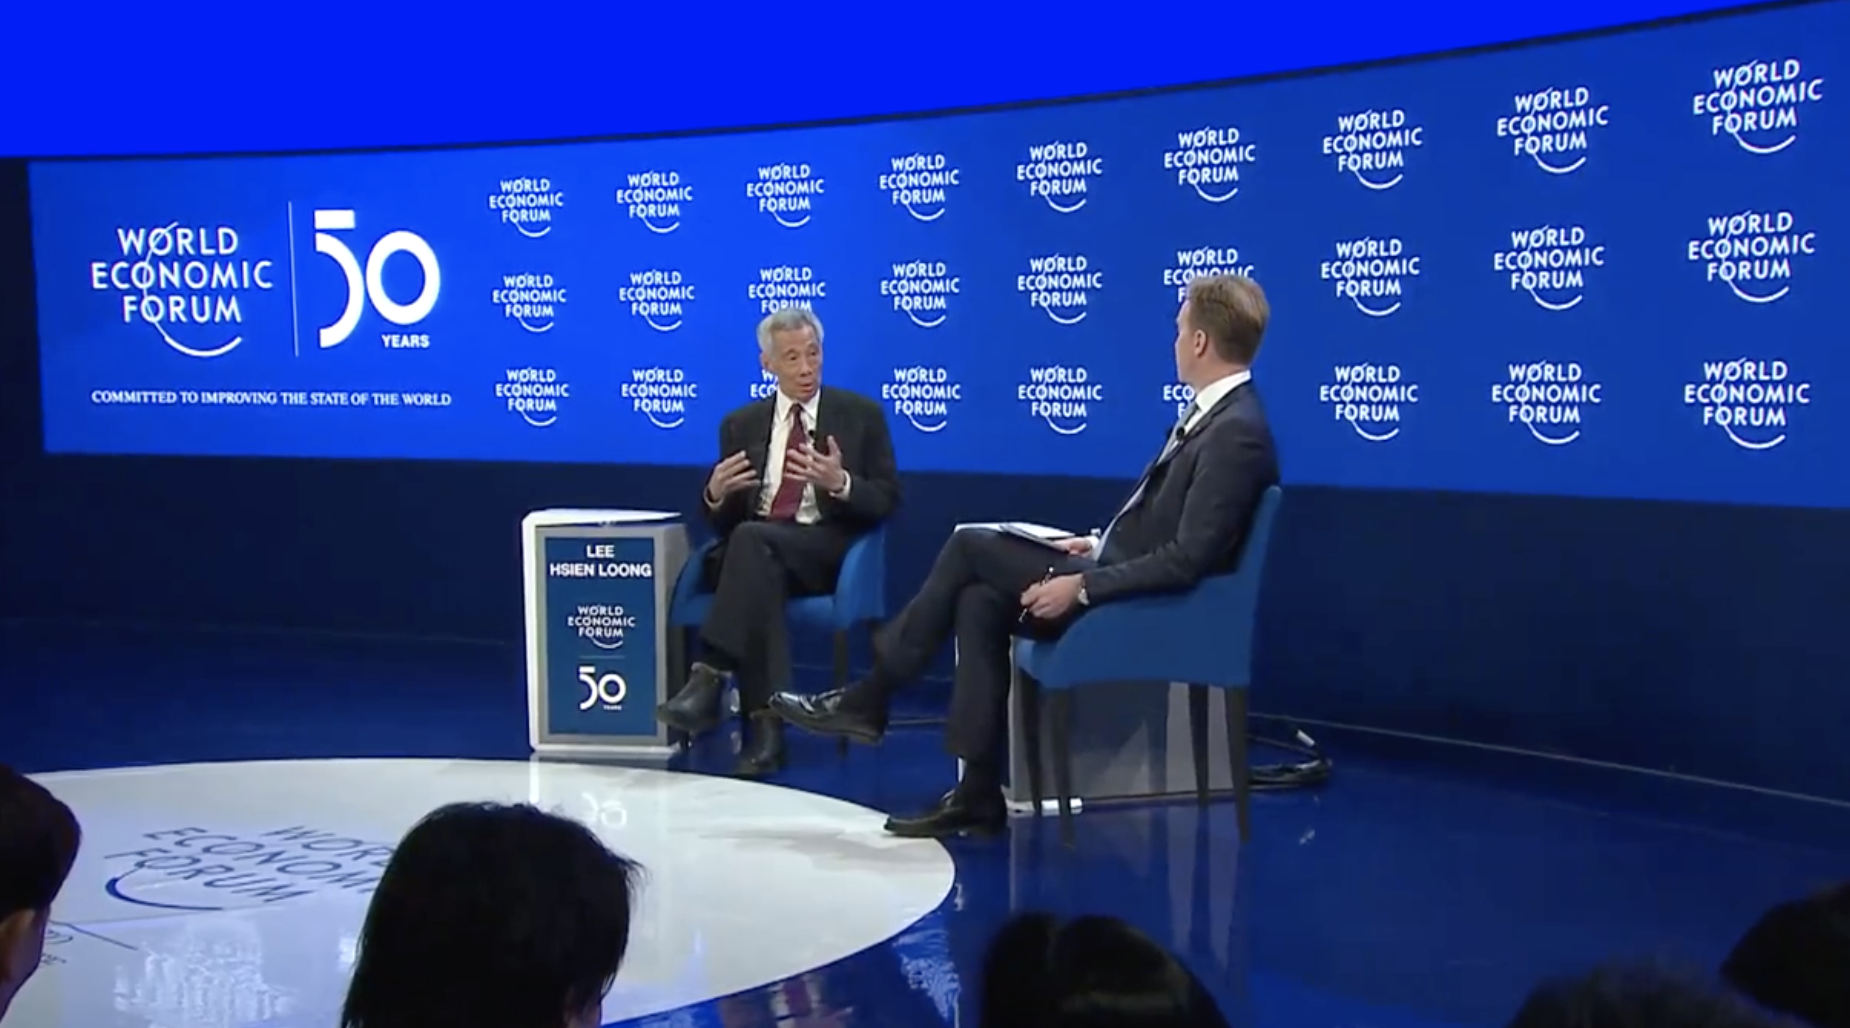 PM Lee Hsien Loong speaking at one of the dialogue sessions at World Economic Forum (WEF). Photo courtesy: Screenshot from WEF video